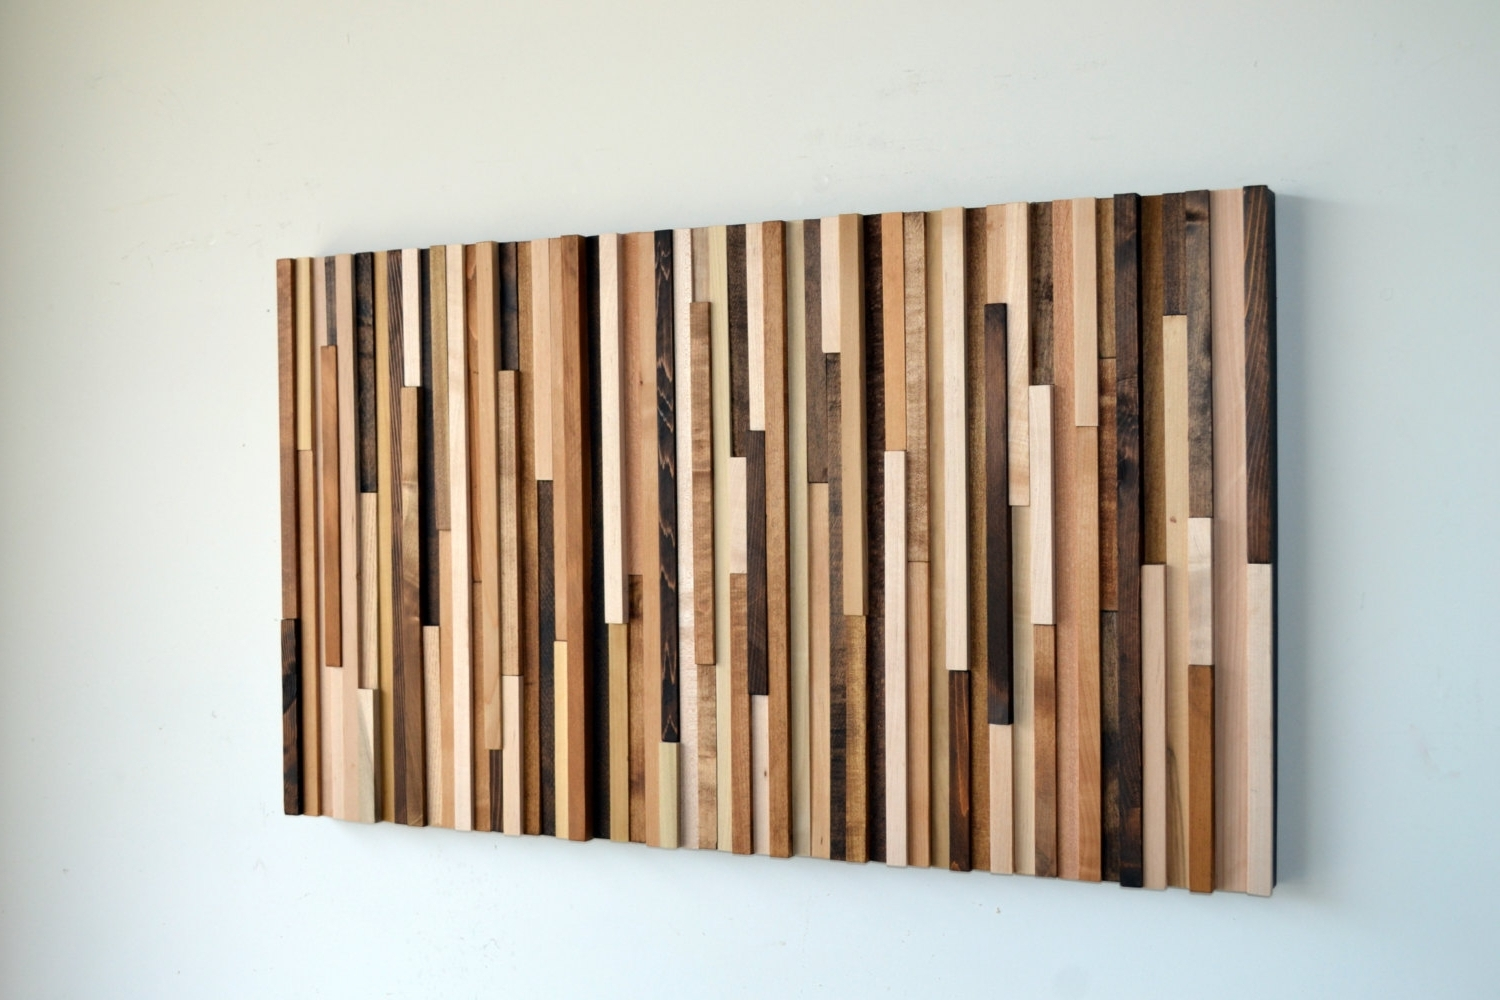 Well Known Decorative Wood Panels Wall Art • Walls Decor For Wooden Wall Art Panels (View 7 of 15)